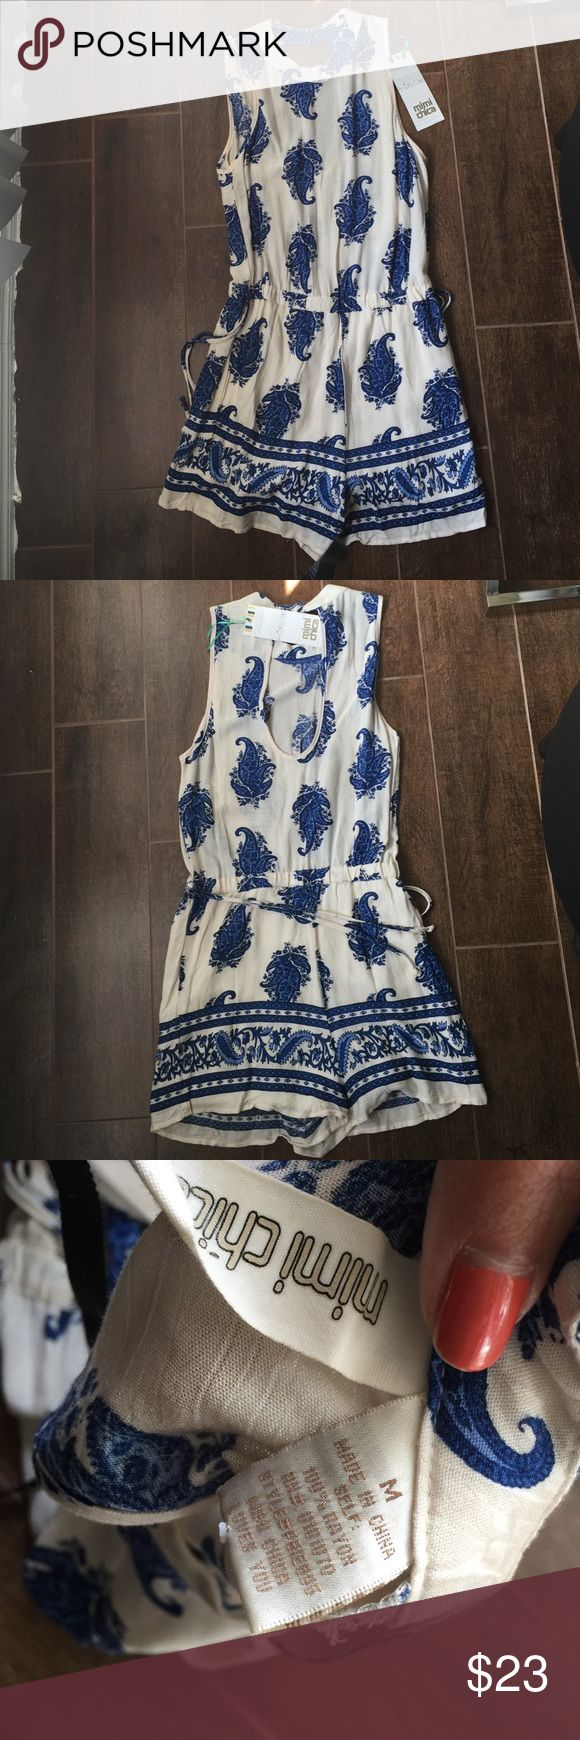 NWT MiMi Chica women's romper sz m NWT MiMi Chica women's cream color with blue floral printed shorts suit/romper sz medium. Never worn! Perfect for spring or summer wear. No rips tears or odor.  Please refer to pics for true detail description of the condition and please message me if you have any questions thank you and happy shopping! Mimi Chica Pants Jumpsuits & Rompers